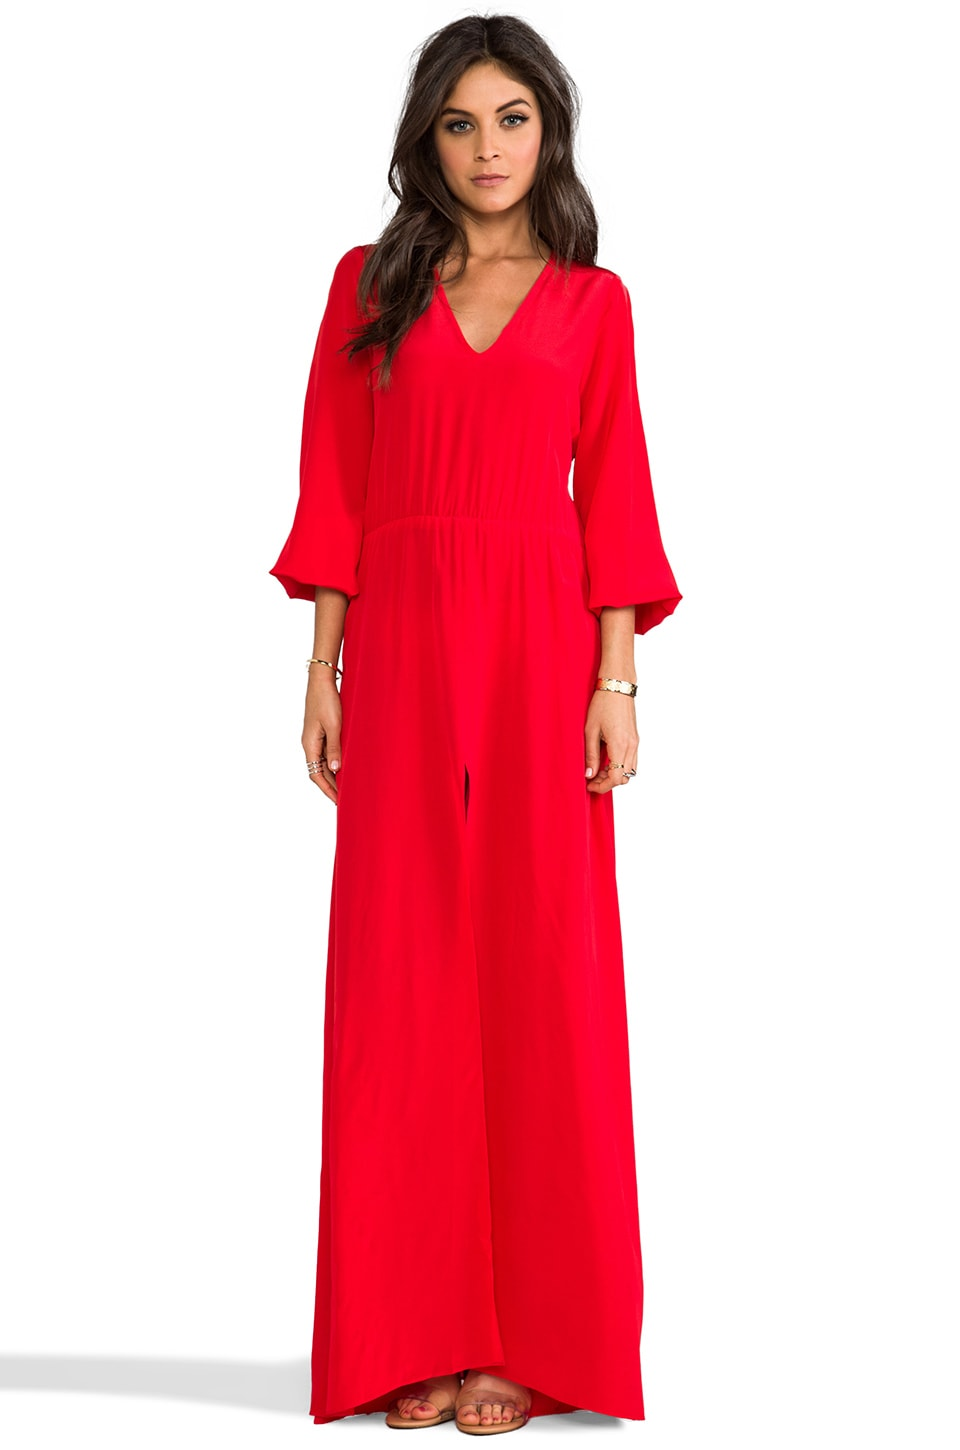 Alexis Philo Dress in Red